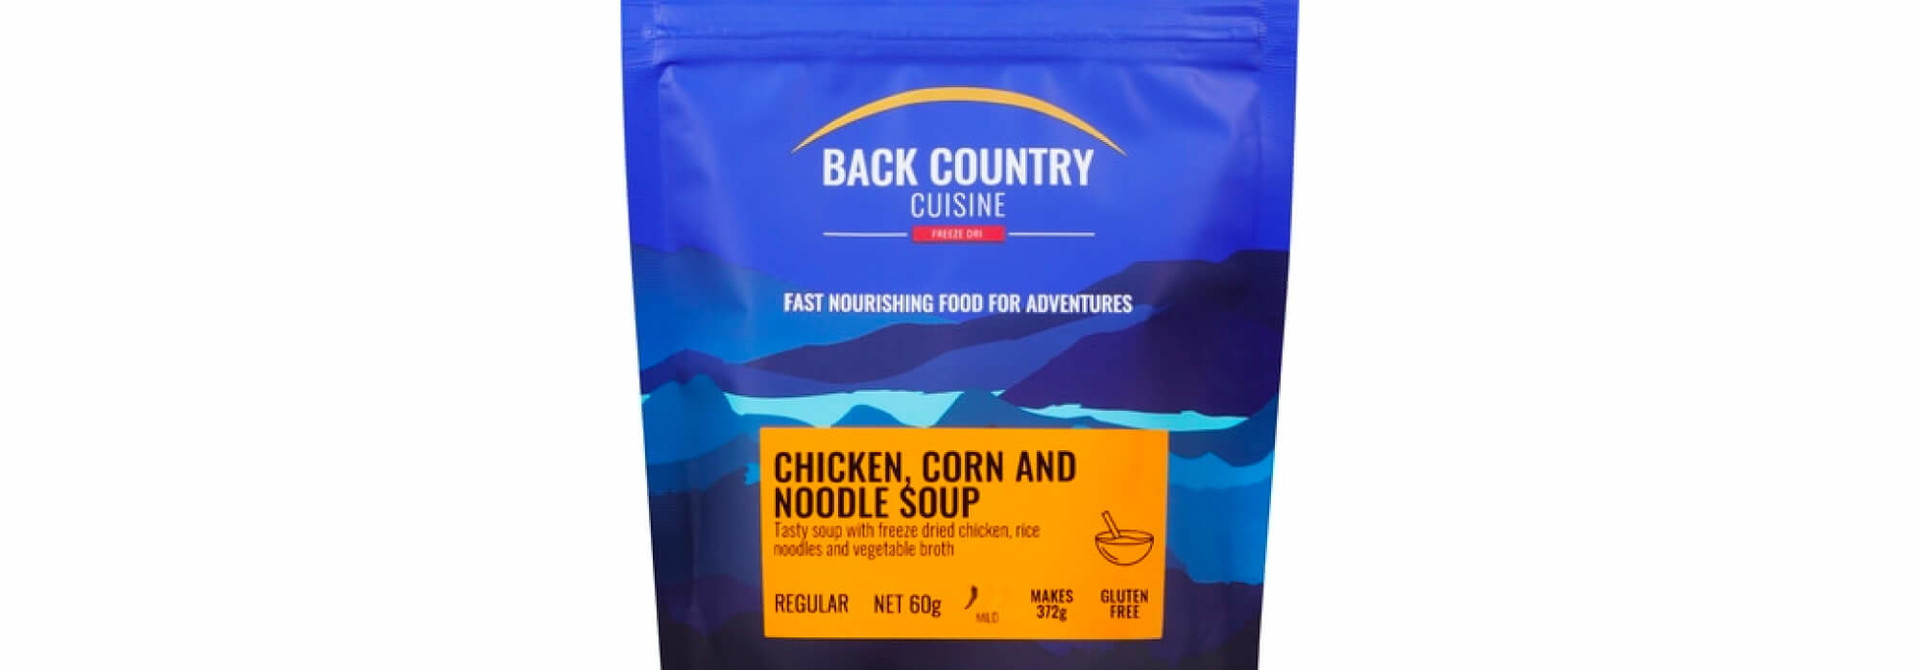 Chicken Corn and Noodle Soup